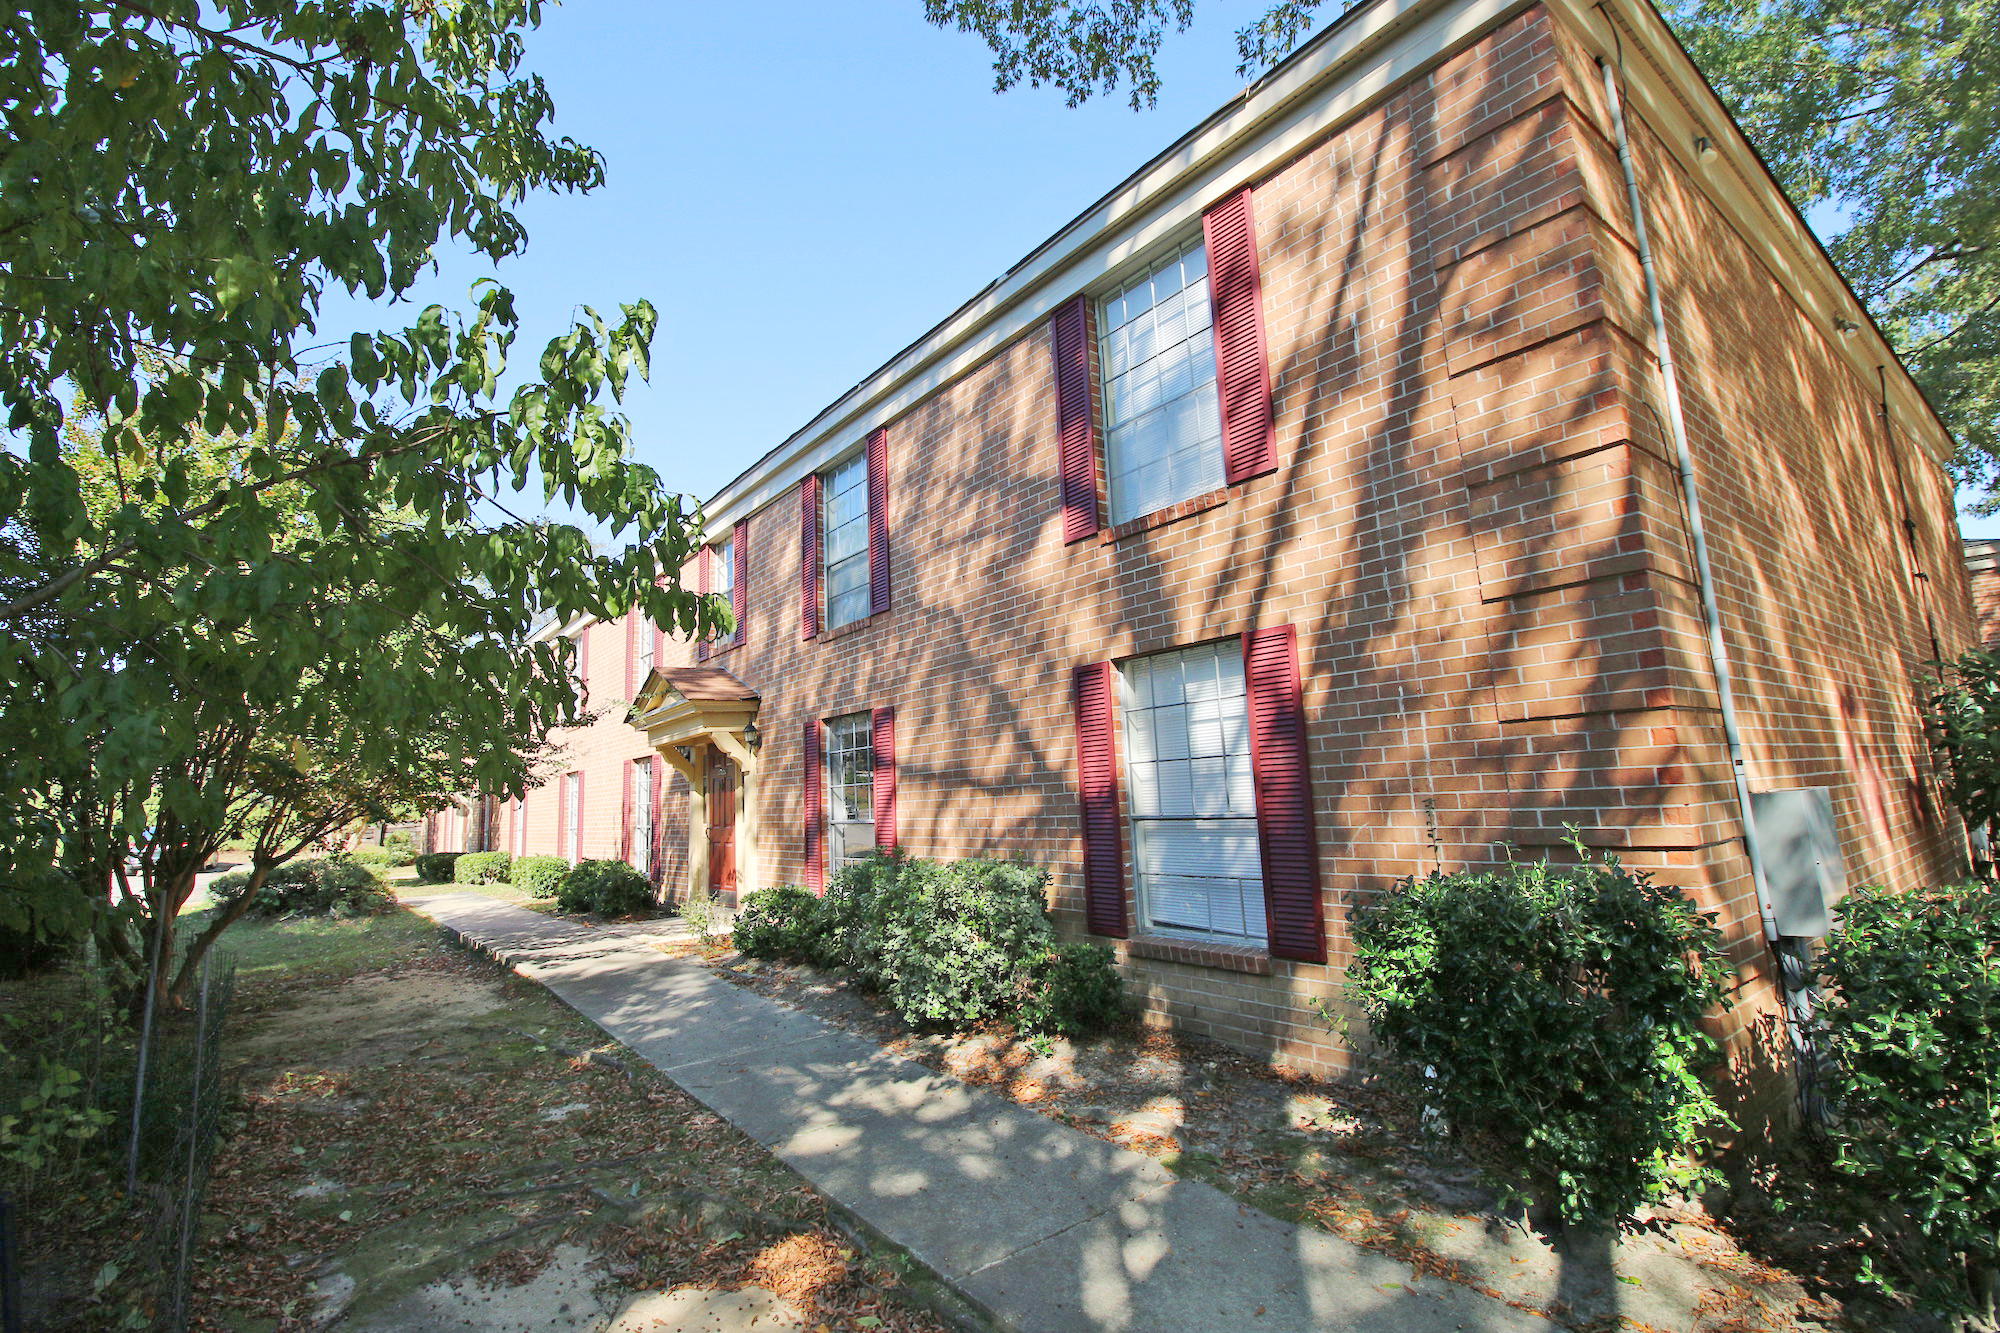 3630 Ranch Road,Columbia,South Carolina 29206,2 Bedrooms Bedrooms,2 BathroomsBathrooms,Apartment,Ranch Road,1326